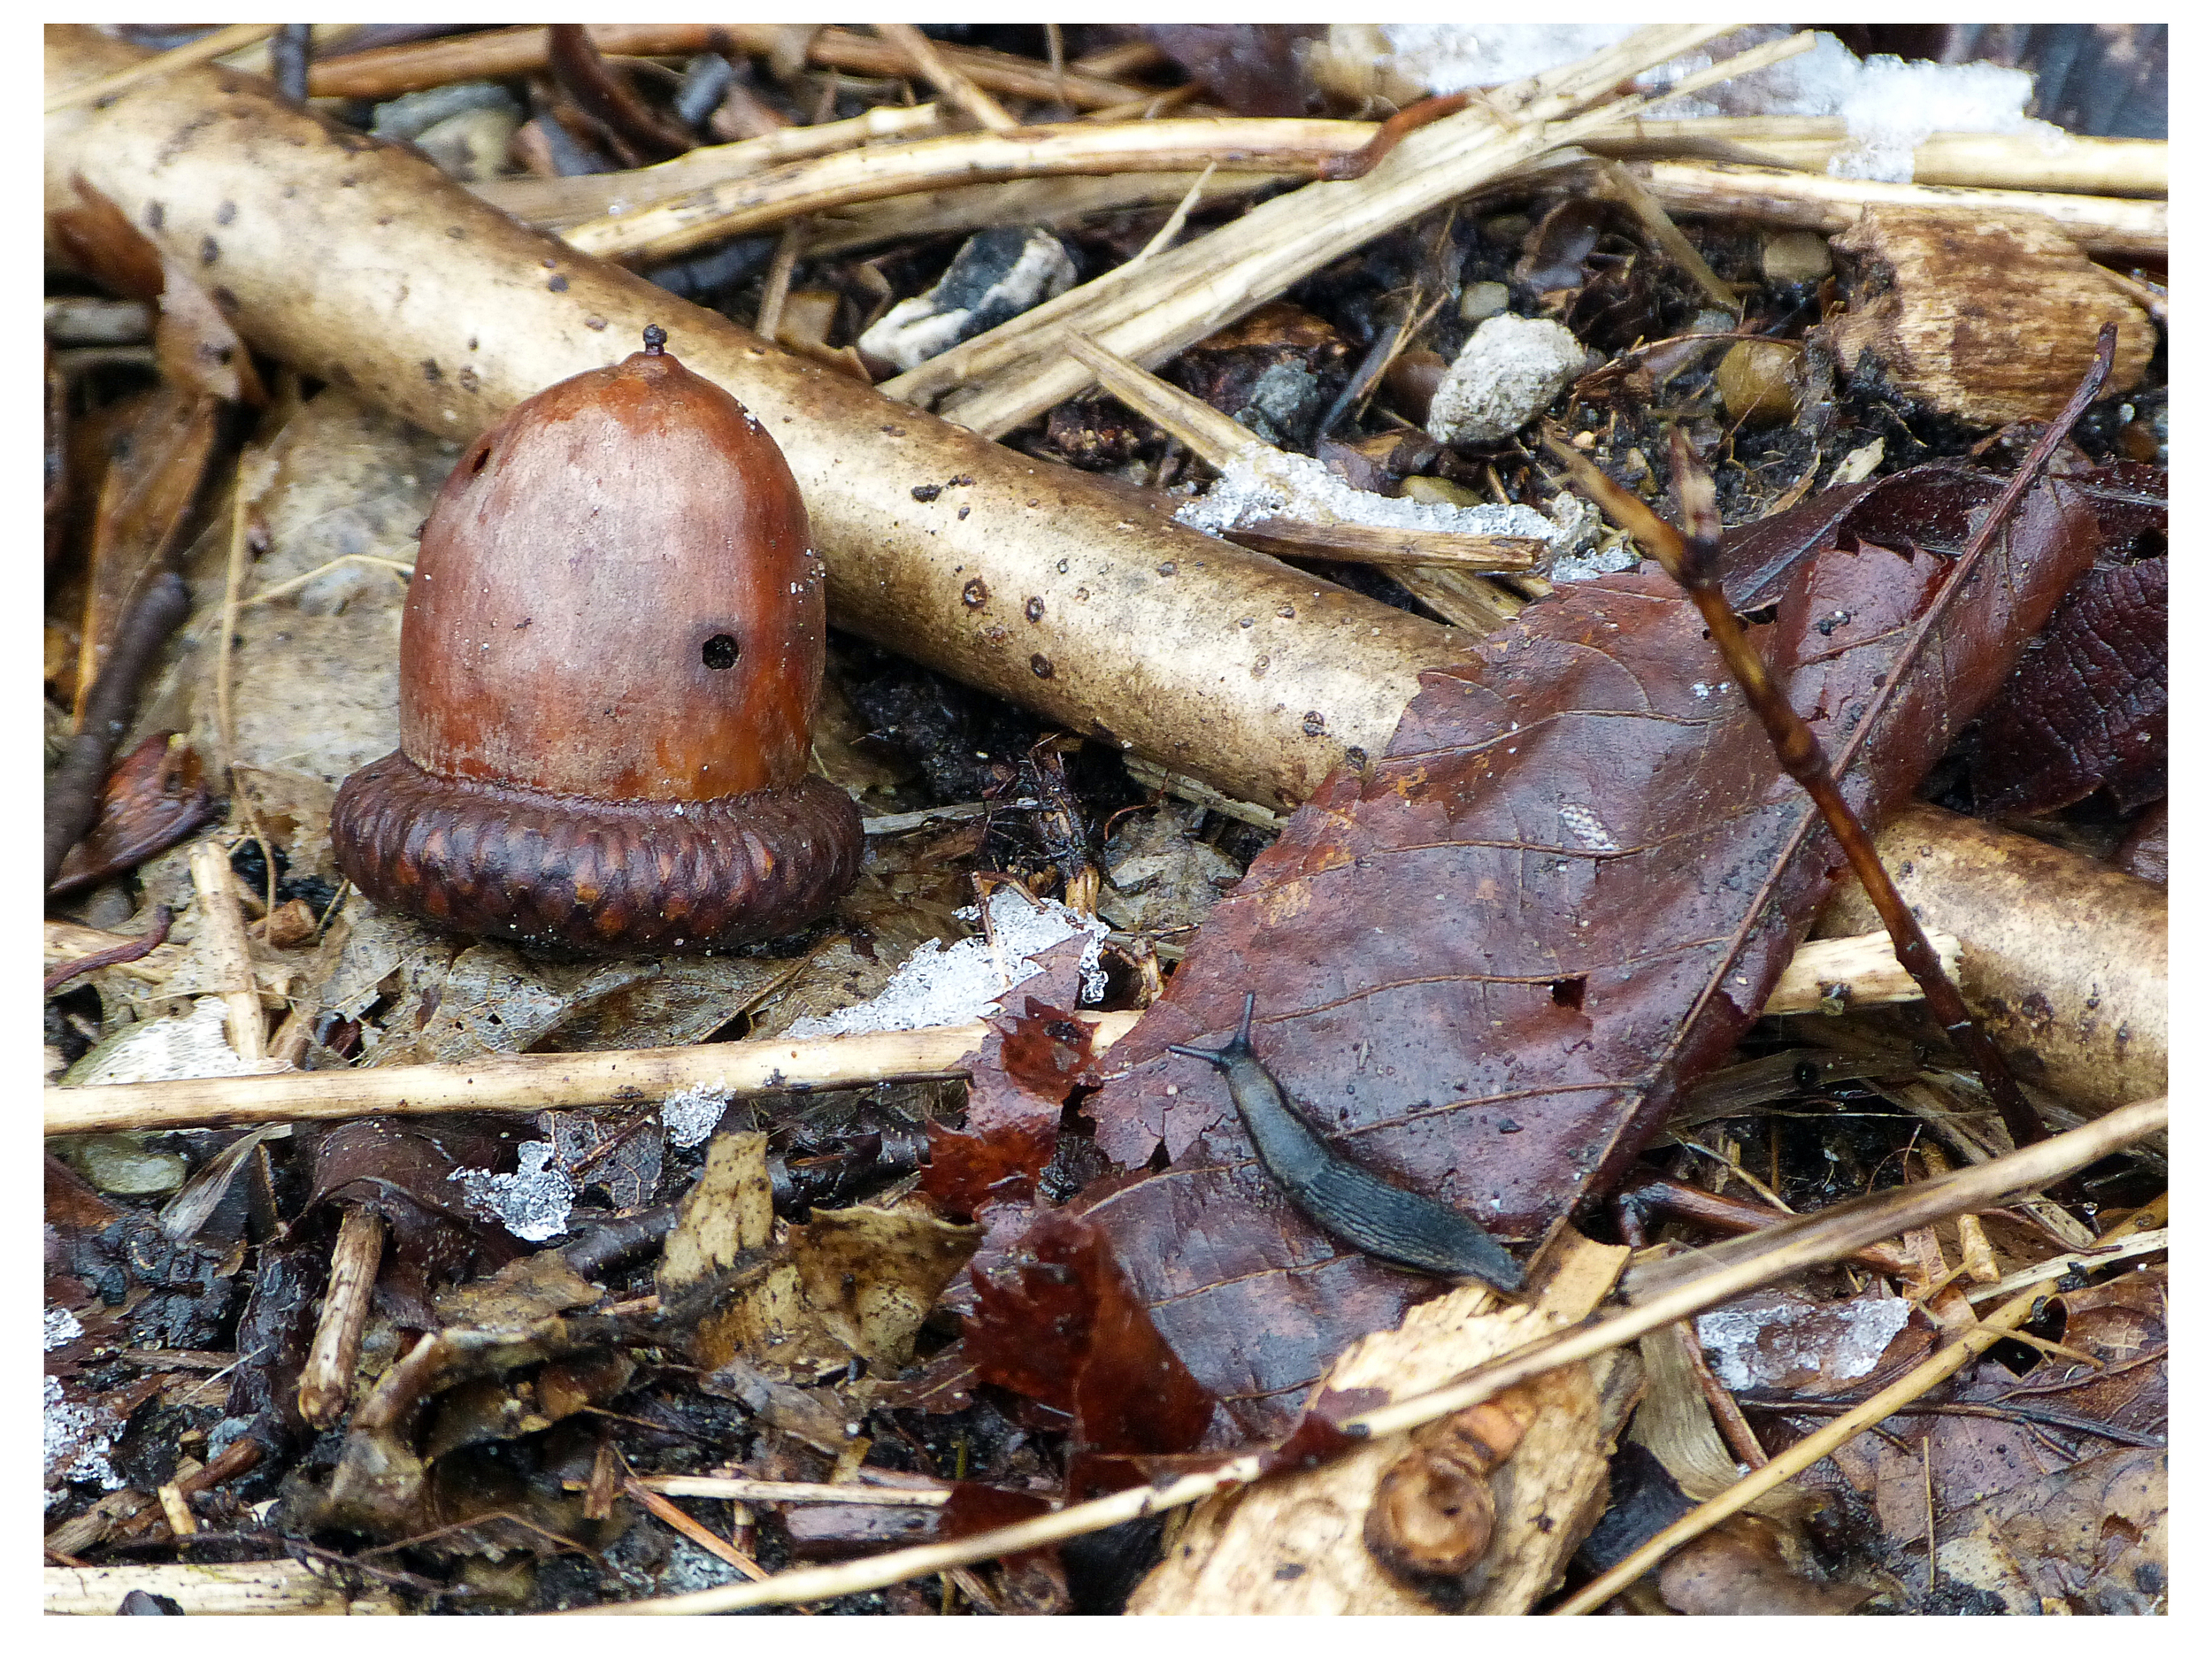 The slug and the acorn.jpg